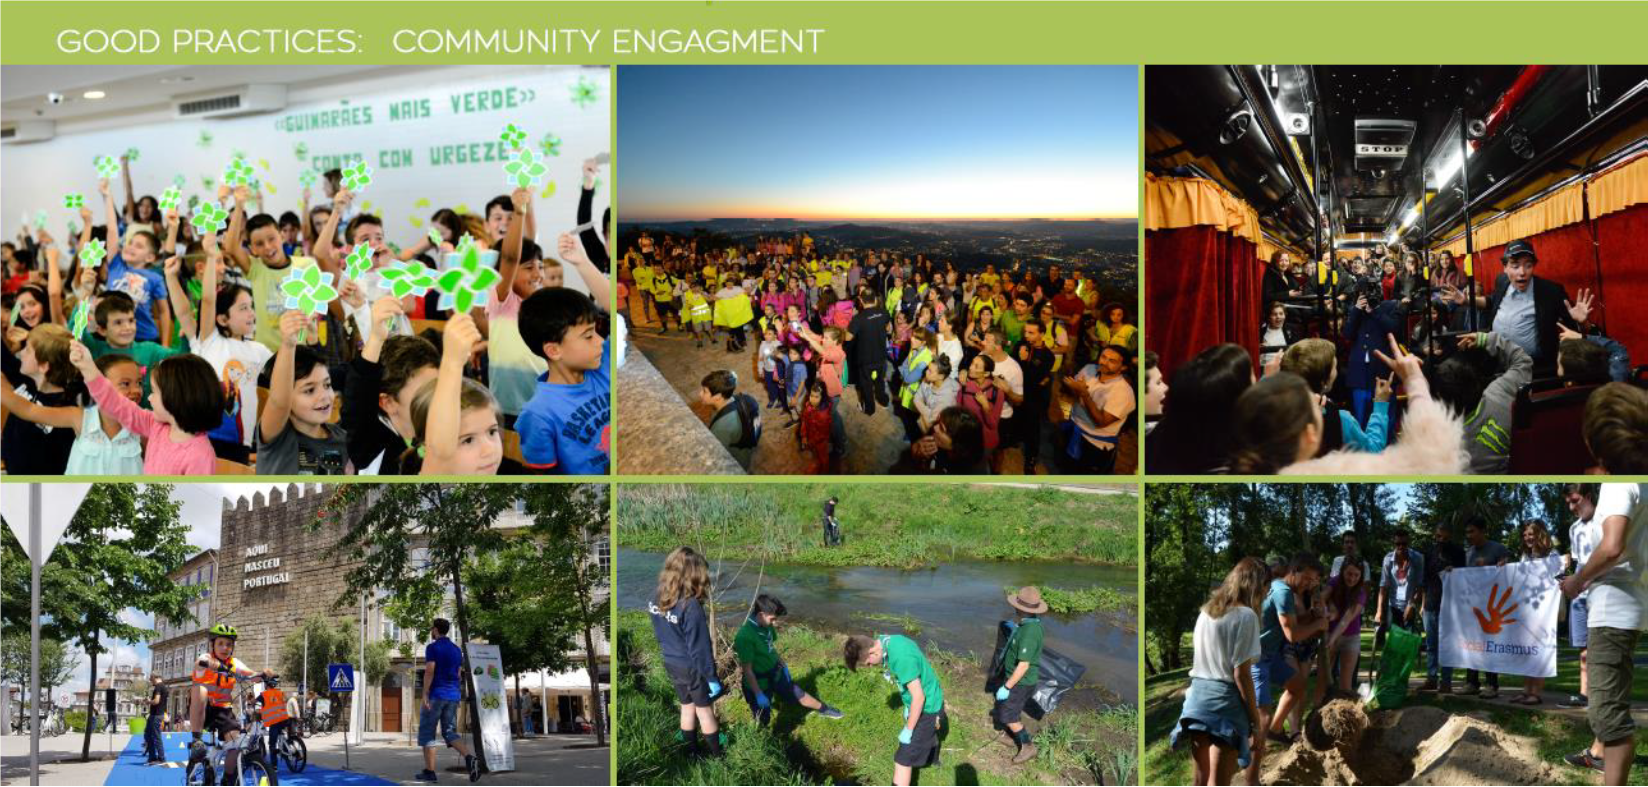 Pictures of kids from Guimarães showing community engagement